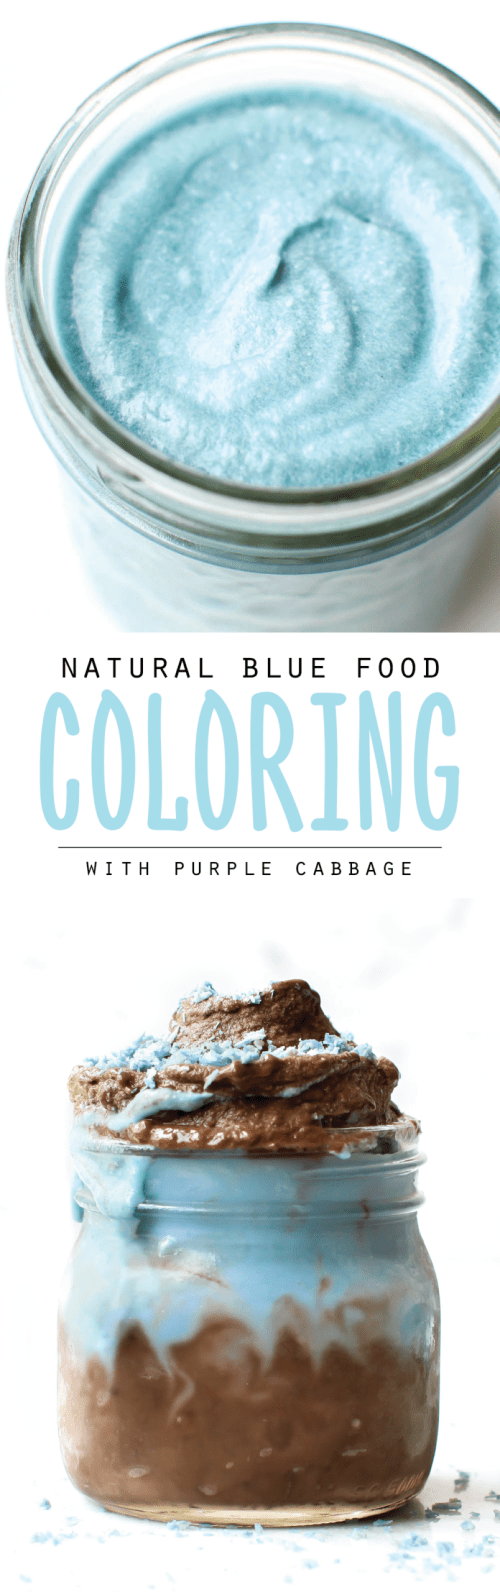 Natural Blue Food Coloring with Red Cabbage {VIDEO}